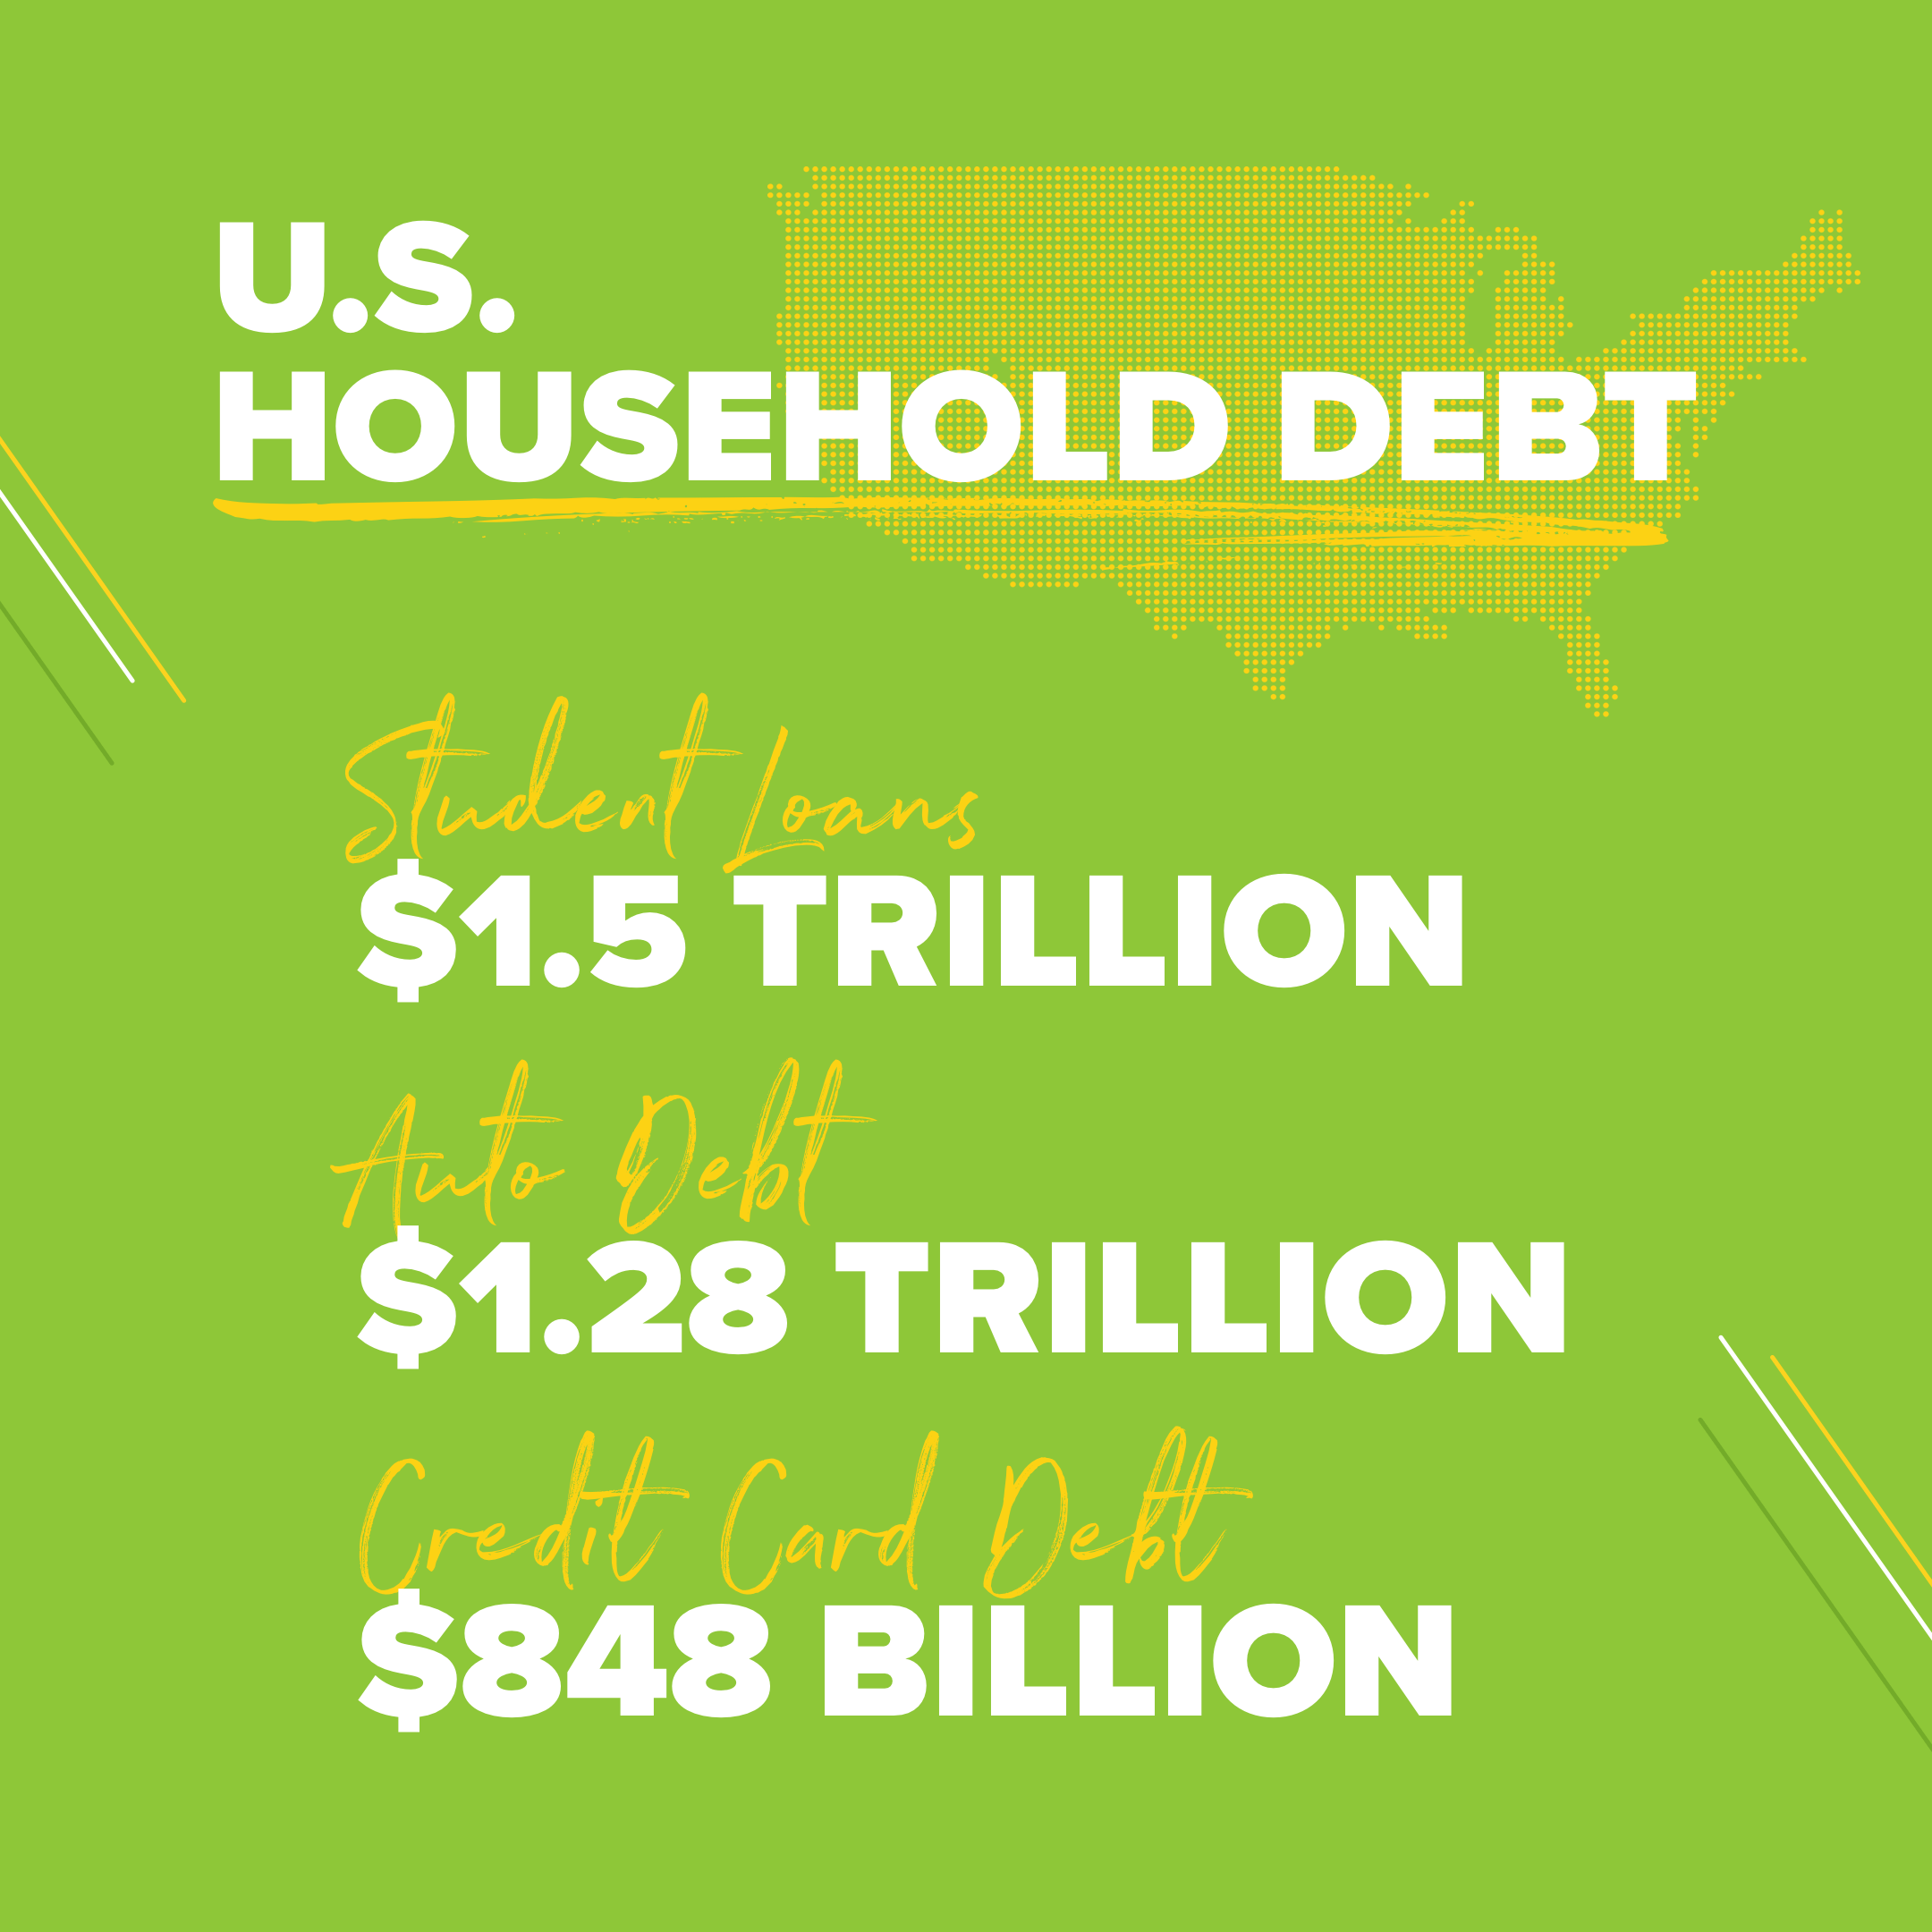 The U.S. Household Debt